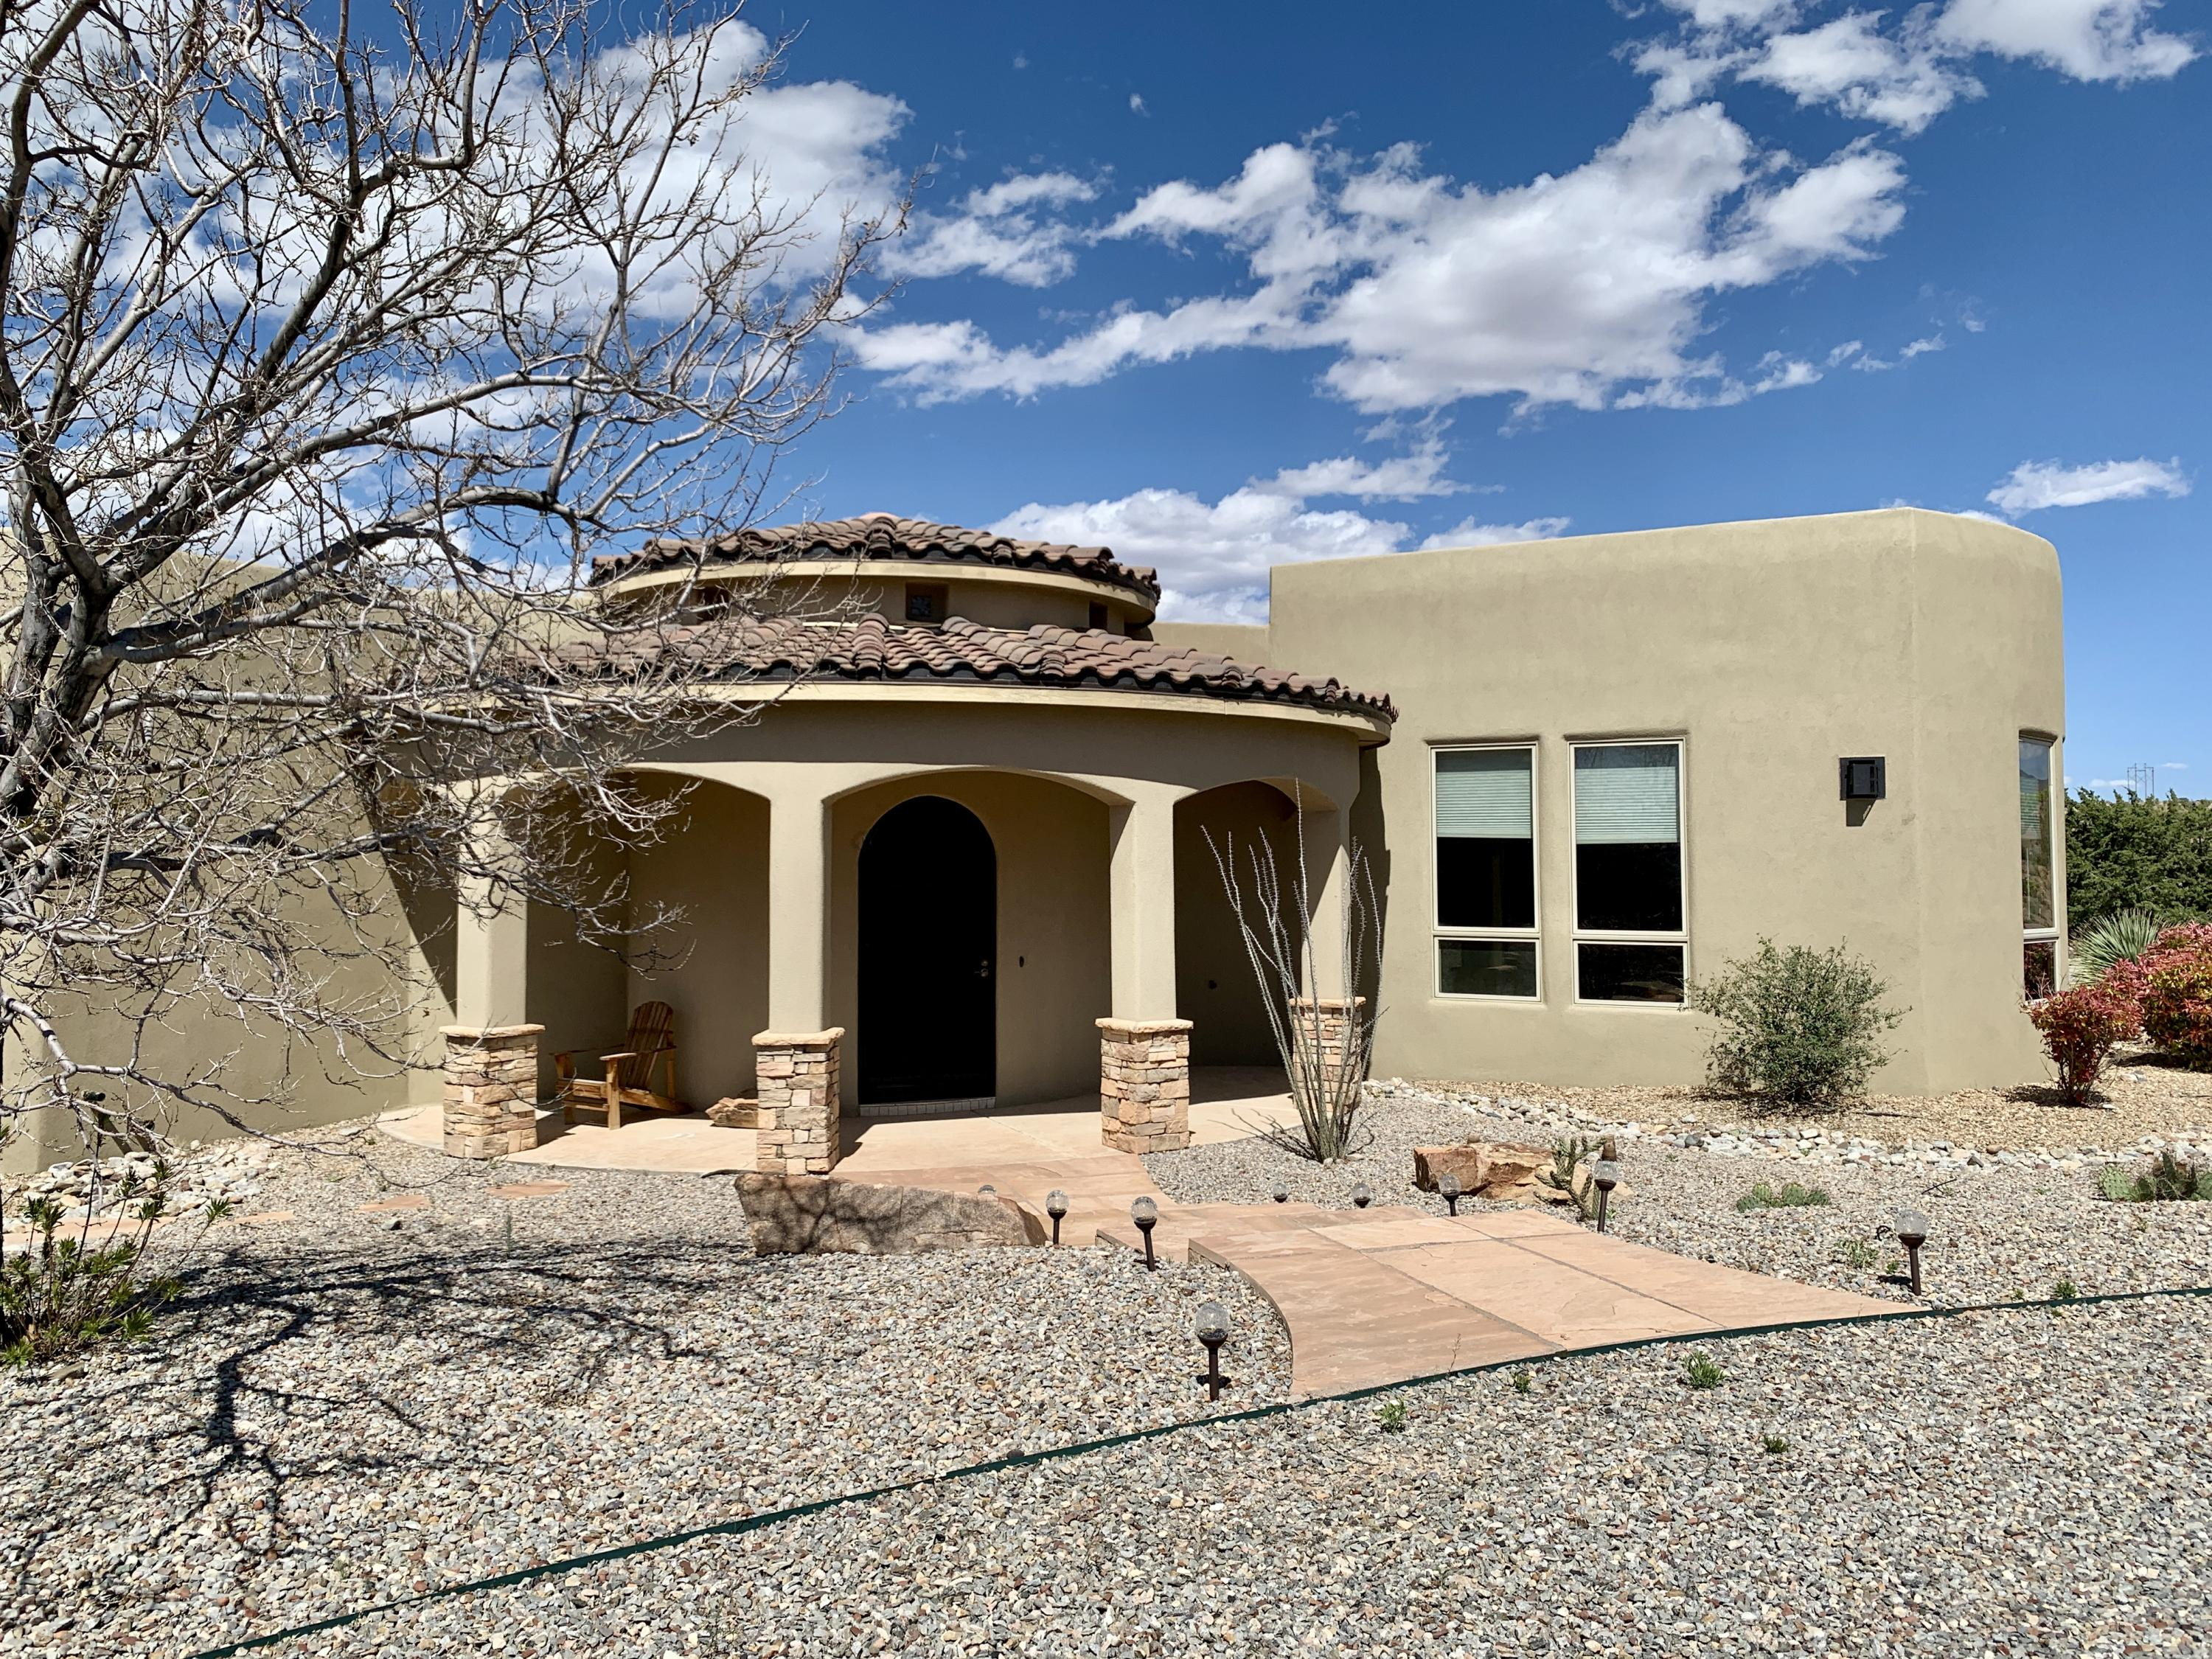 Price Reduced! Tranquility minutes from ABQ! Mountain and desert vistas from every window. SW and Old World architectural styles blended with current amenities. 3 BR + Office, 3 BA home. Gourmet center island kitchen w/ Thermador appliances, full-size range + built-in oven, wine fridge, prep area + sink, 2 dishwashers, custom dry bar + more. Finishes include Diamond Plaster, Travertine and tile throughout. Natural light and stacked stone highlight the deep spa tub and all-tile shower in the master suite. Perfect for 4 season outdoor living w/ stone fire pit, hot tub + shade trees. Grow your own food in the backyard orchard of mature, fruit-bearing trees (peaches, plums, nectarine, apple)  fully-automated irrigation system. Newly repainted Great room and Master Bed/Bath See Virtual Tou